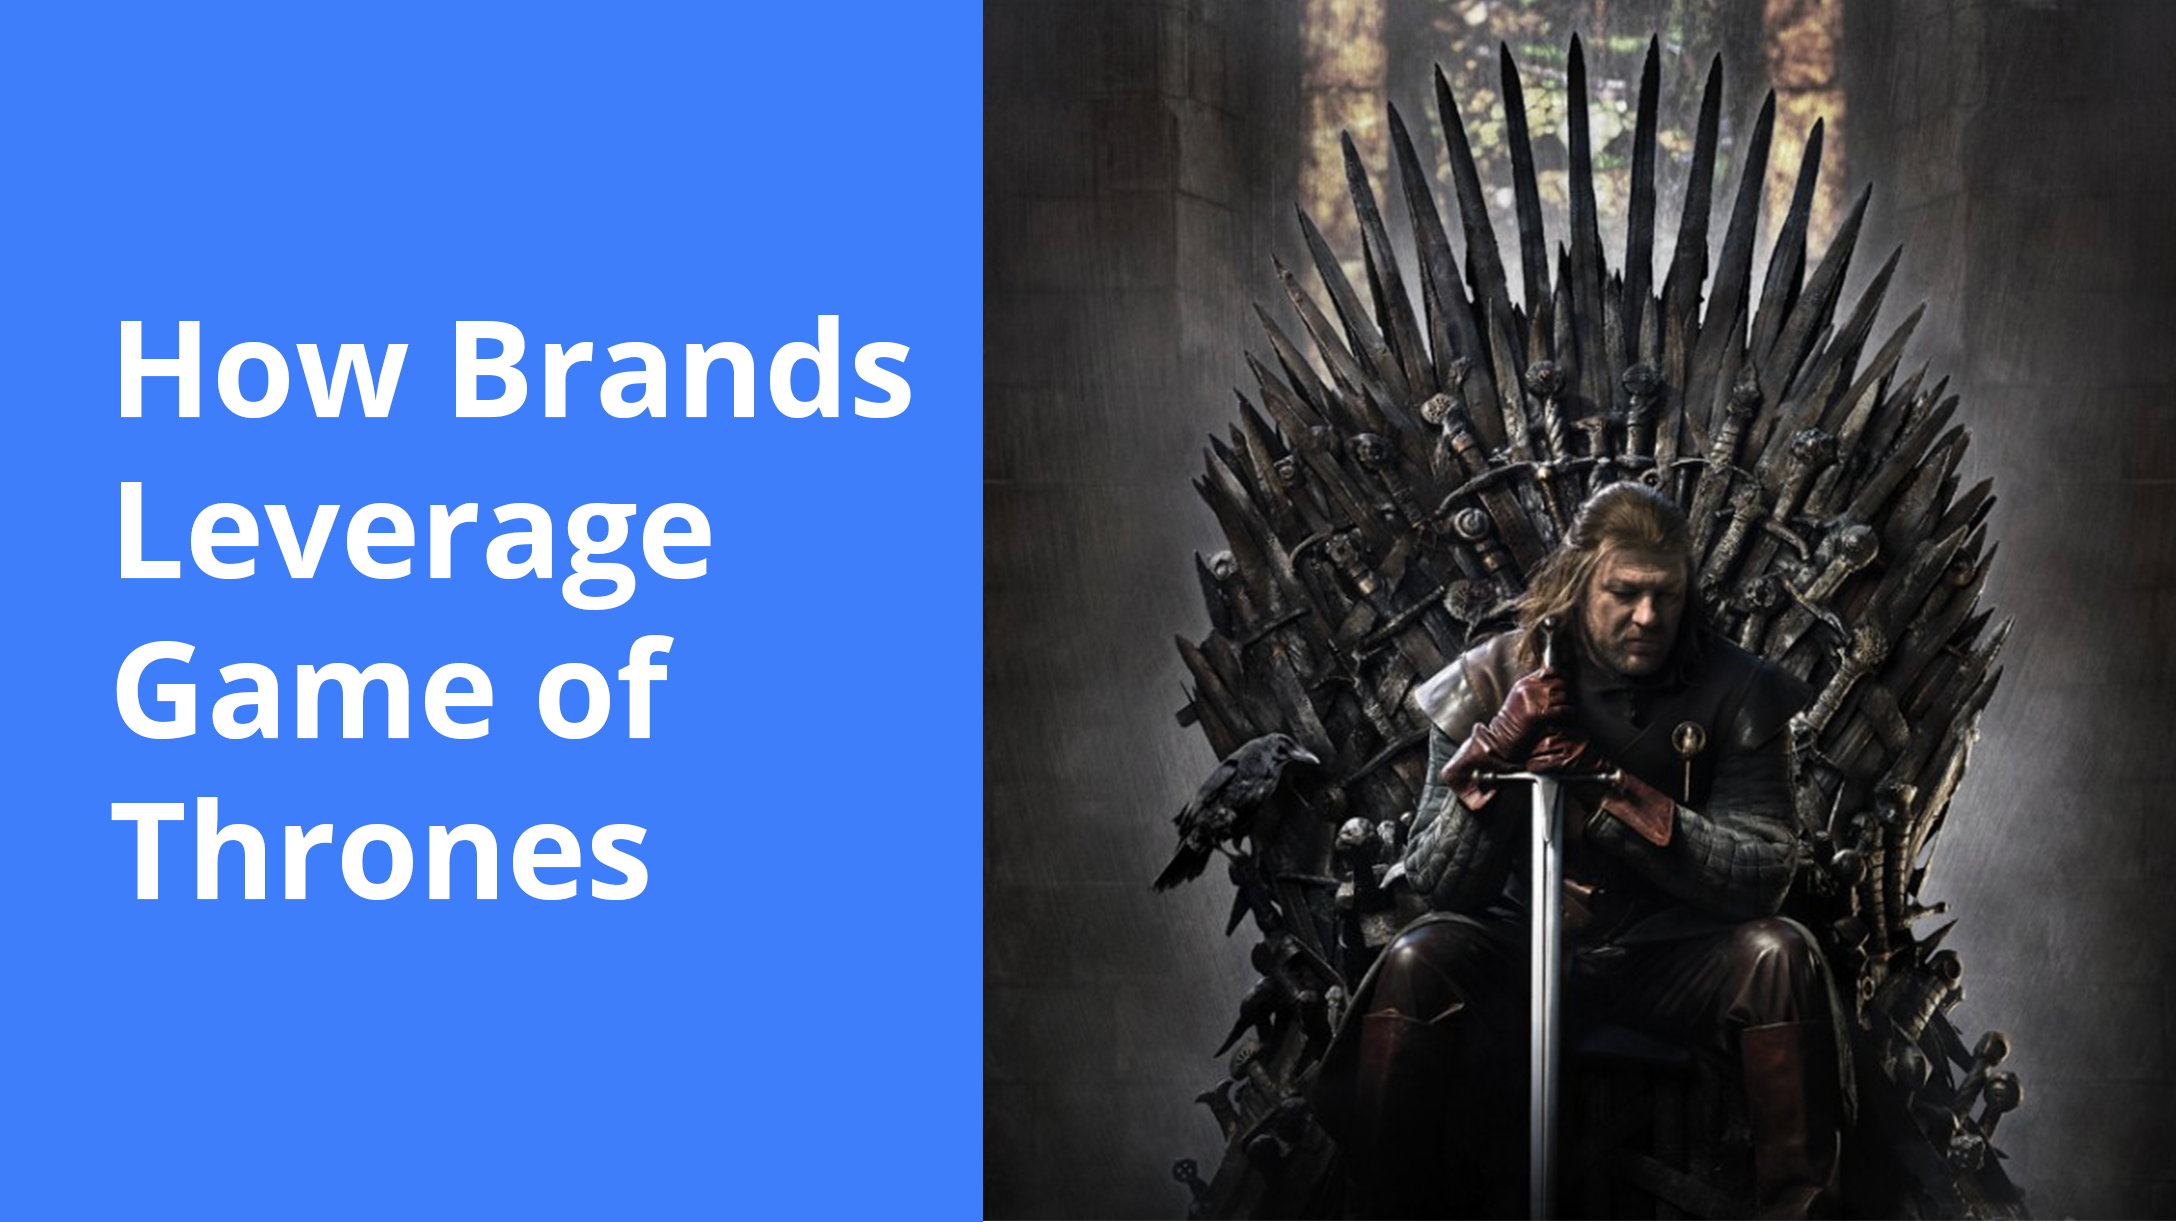 Social Marketing Snapshot: How Brands Leverage Game of Thrones